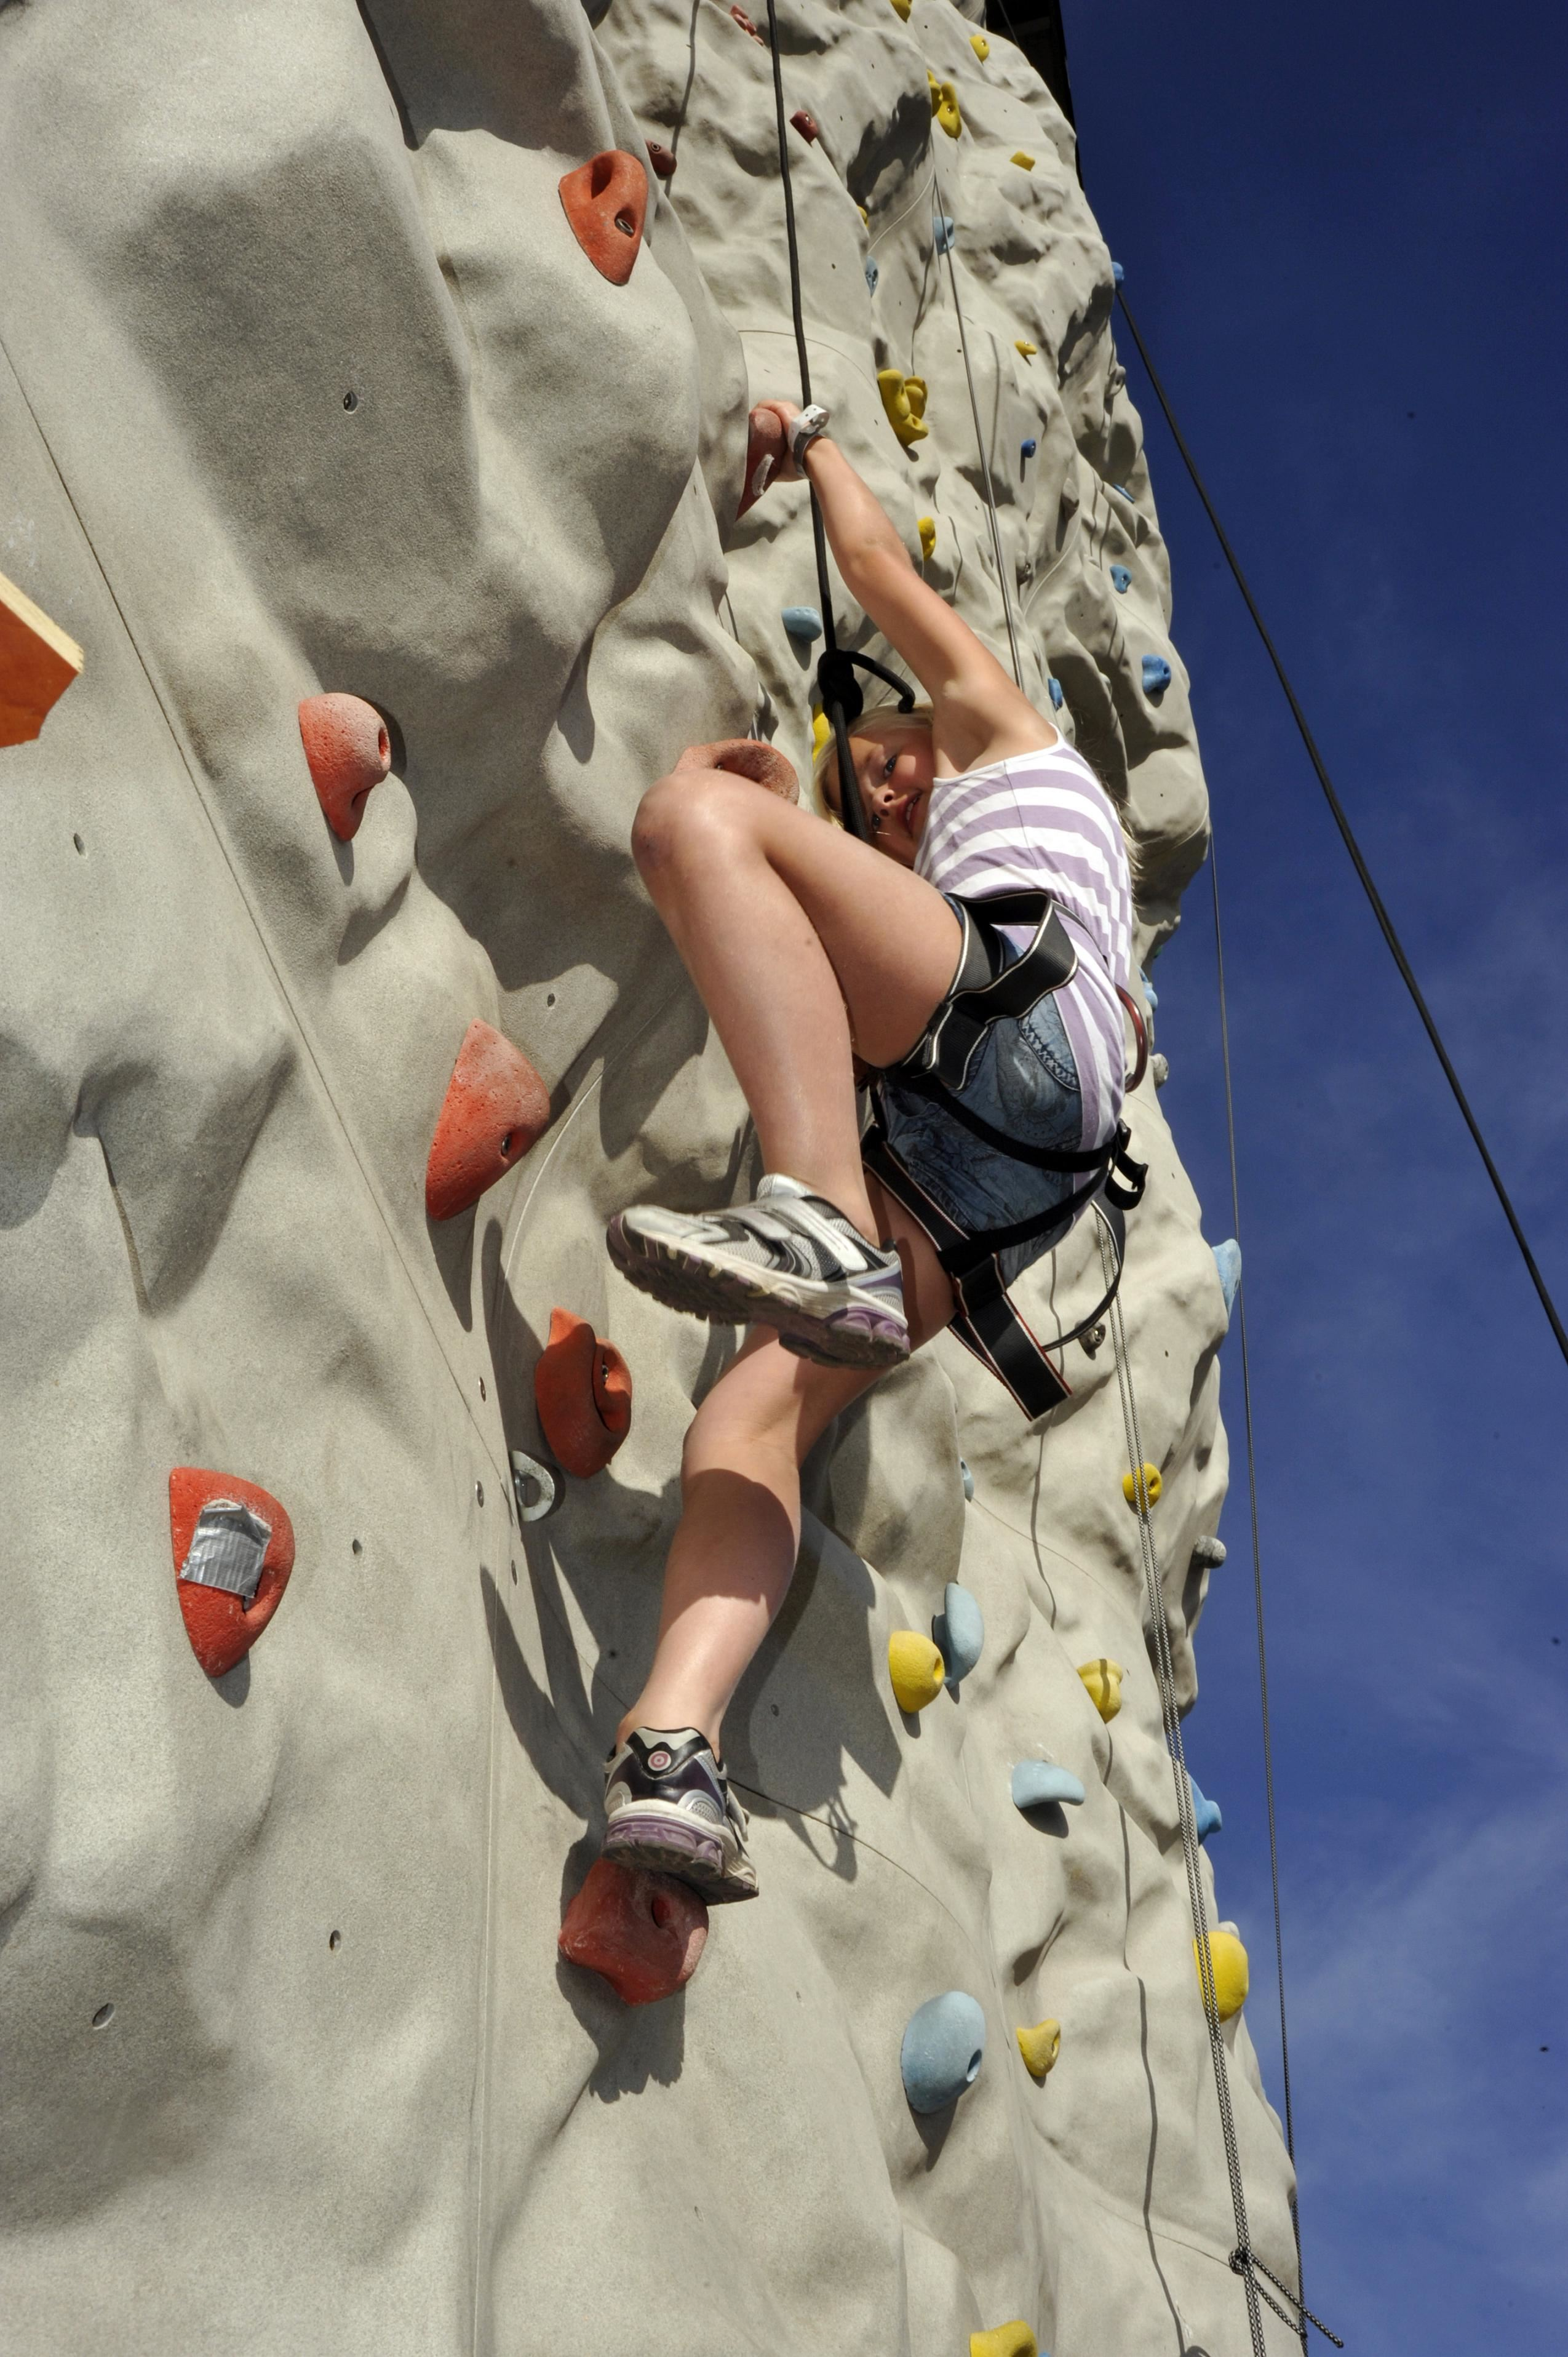 Try out climbing